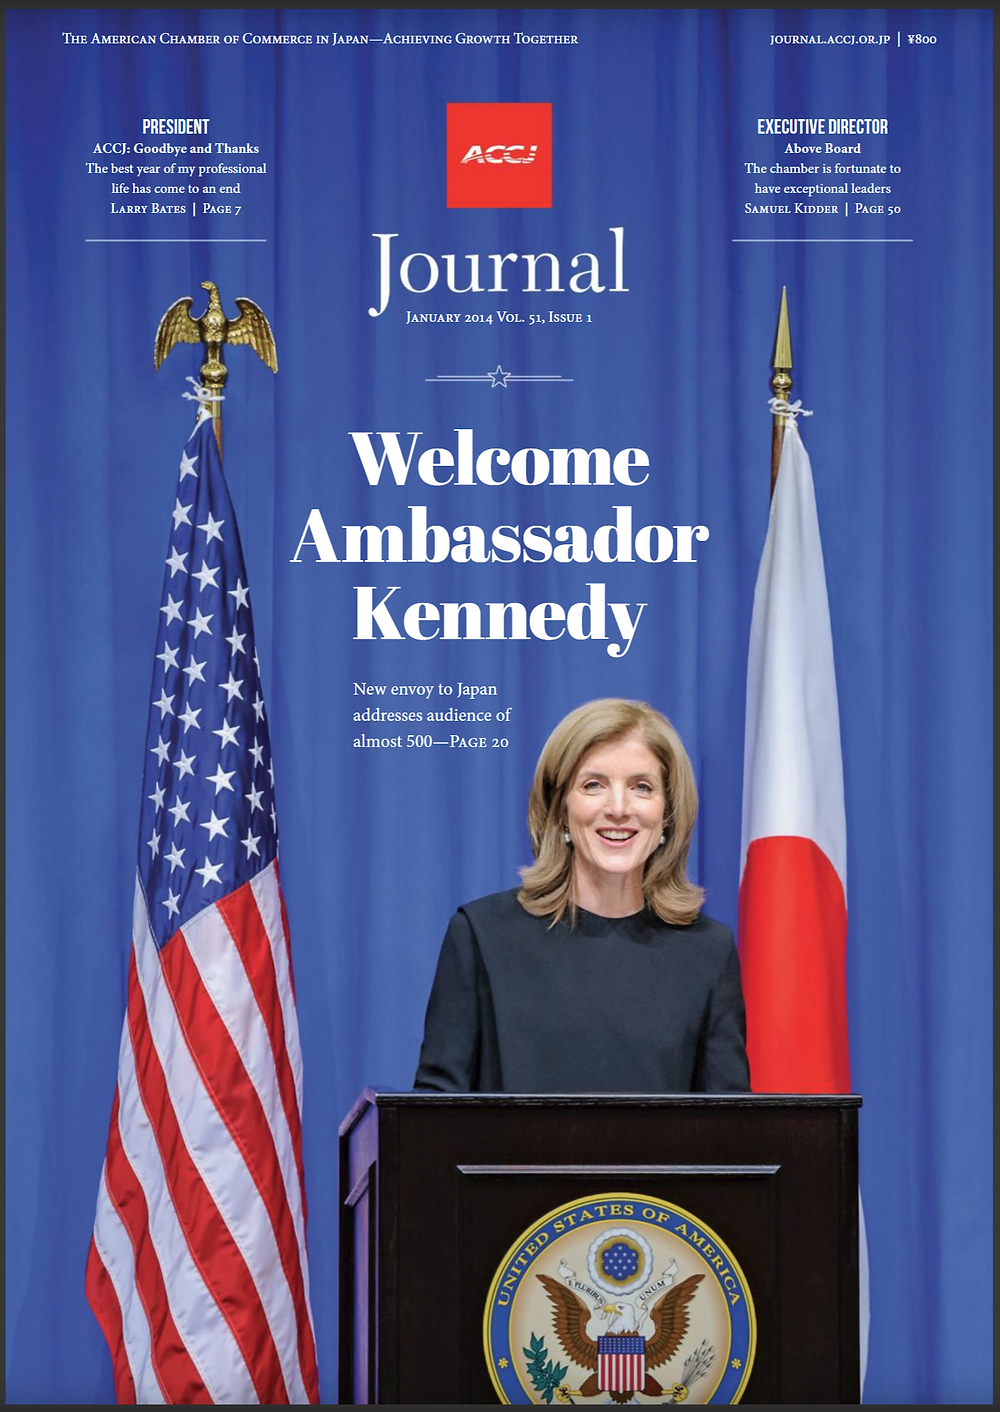 "COVER STORY | ACCJ EVENT | ENVOY January 2014 Welcome Ambassador Kennedy New envoy to Japan addresses ACCJ luncheon  By Megan Waters ACCJ Journal editor-in-chief Photos by Antony Tran Ambassador Caroline Kennedy addressed an audience of almost 500 at the ACCJ's ""Welcome Luncheon for U.S. Ambassador to Japan Caroline Kennedy."" Co-organized with the America-Japan Society, the sell-out luncheon event was held at the Hotel Okura, Tokyo on November 27.   https://journal.accj.or.jp/cover-story-accj-event-envoy/  The ACCJ - 在日米国商工会議所 http://www.accj.or.jp"